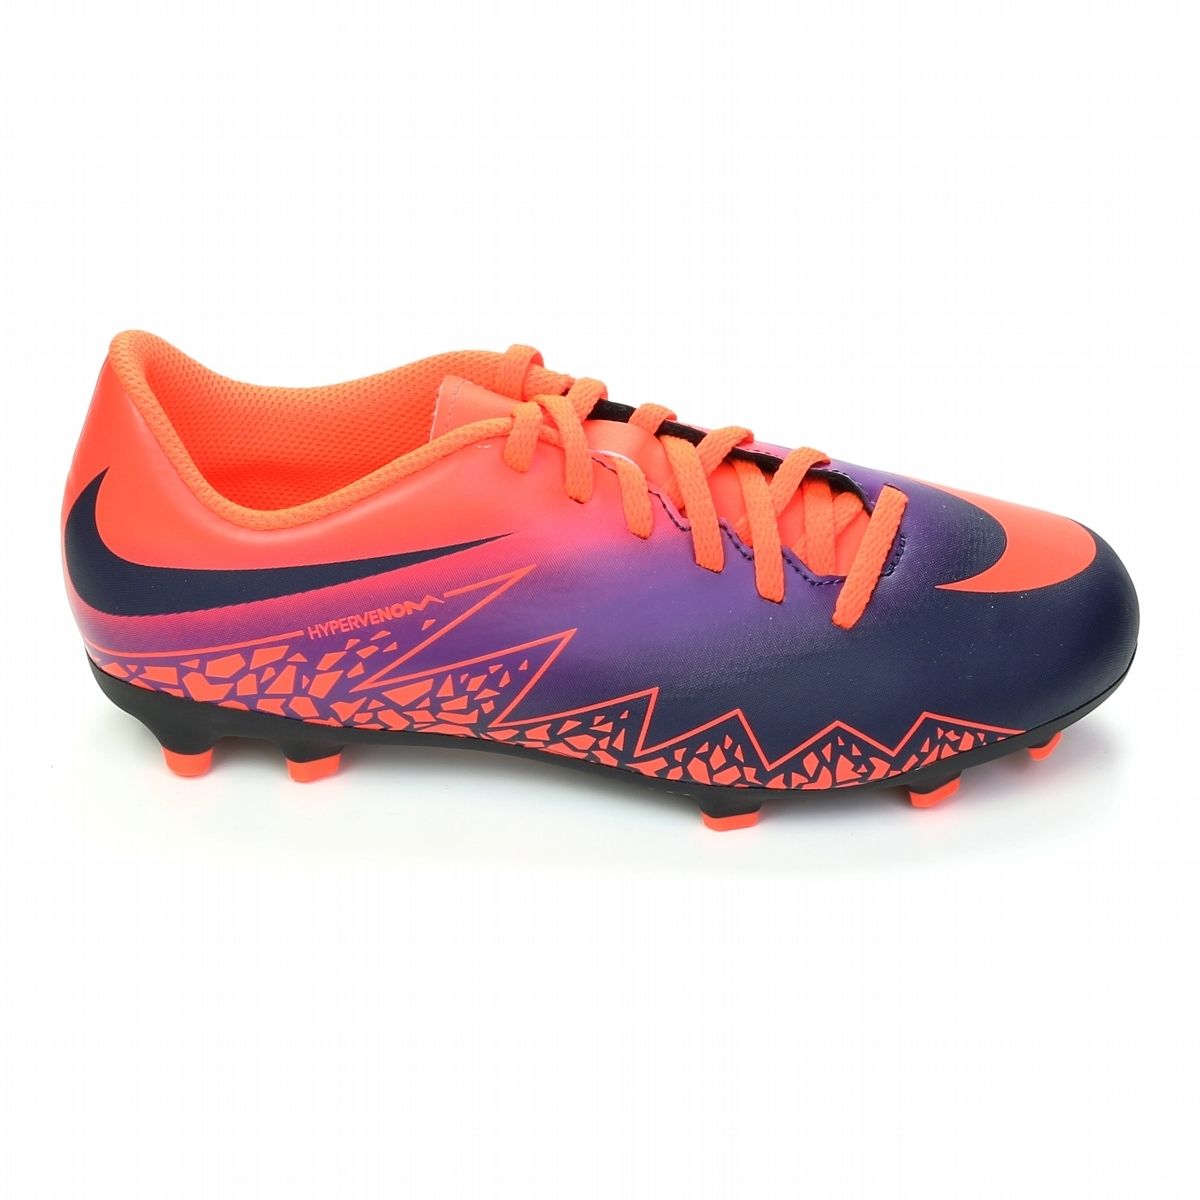 7c999a643 purple hypervenom cleats on sale   OFF57% Discounts